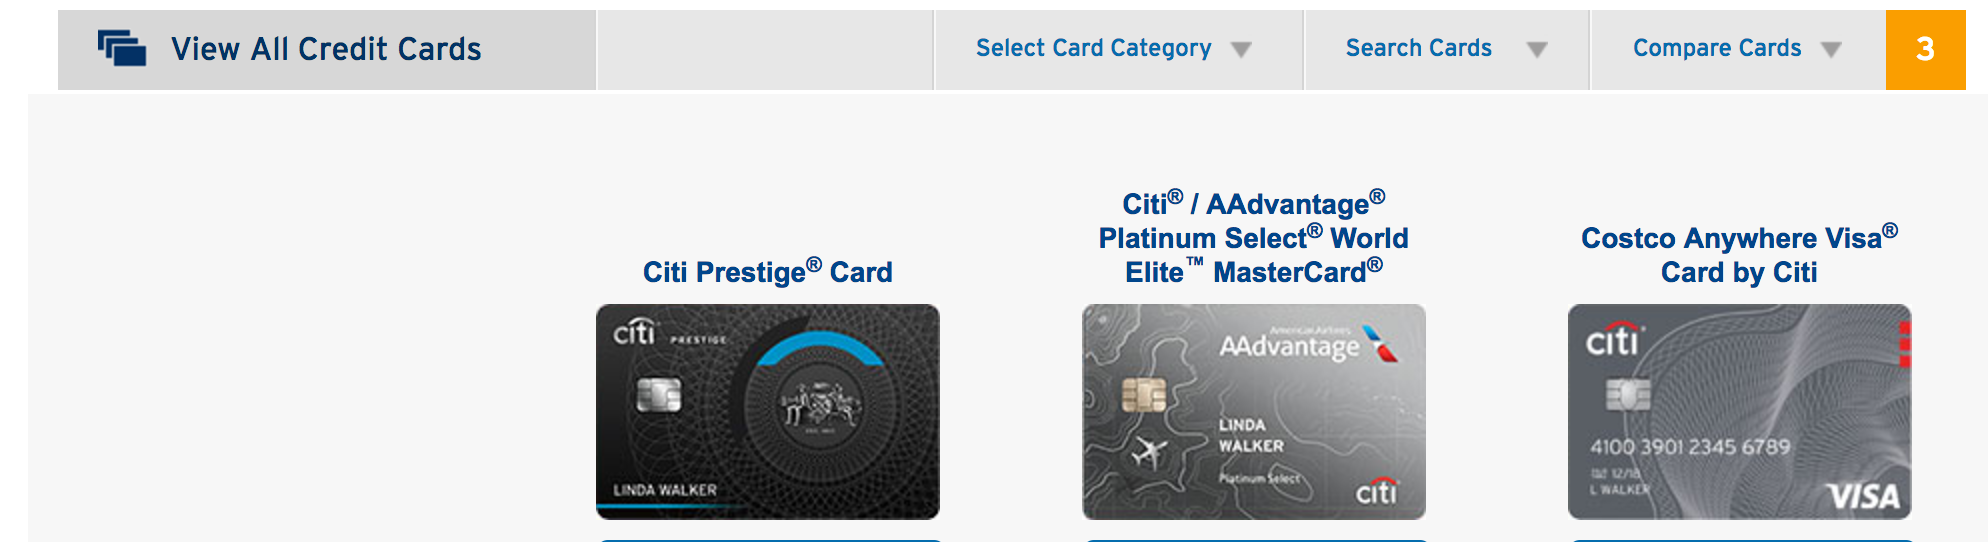 Online Banking Page 2 Wiring Instructions For Citibank Rewards Credit Cards